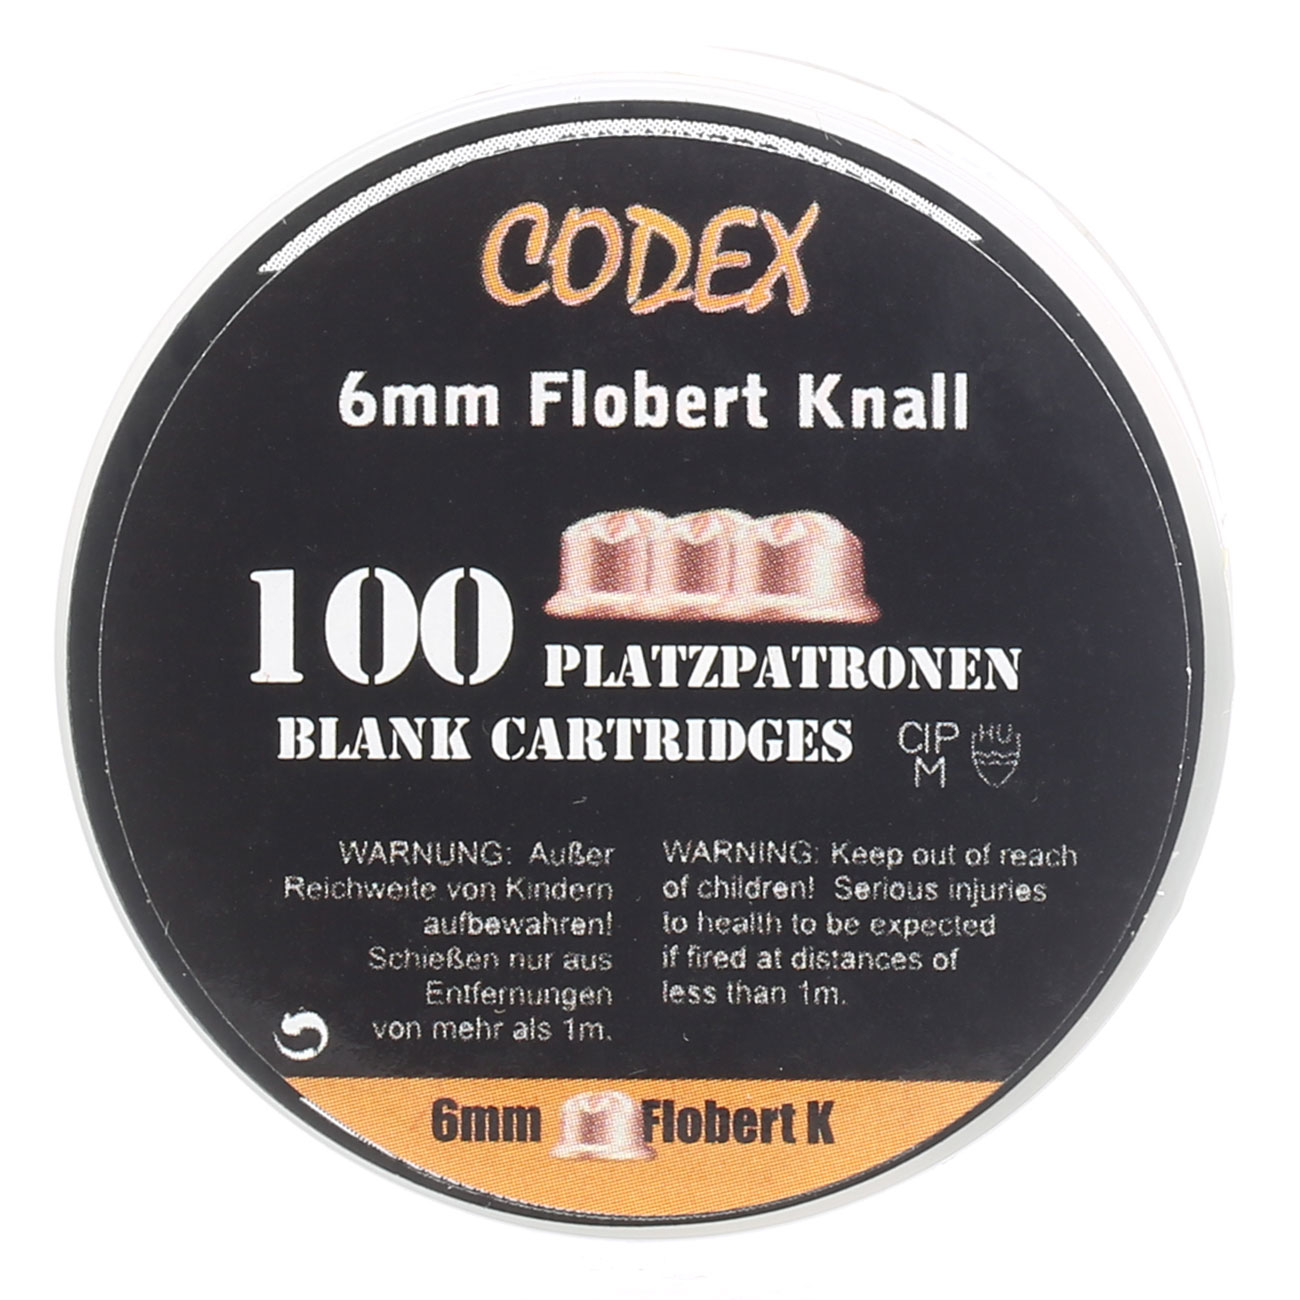 Codex Knallpatronen 6mm Flobert 100 Stück 3